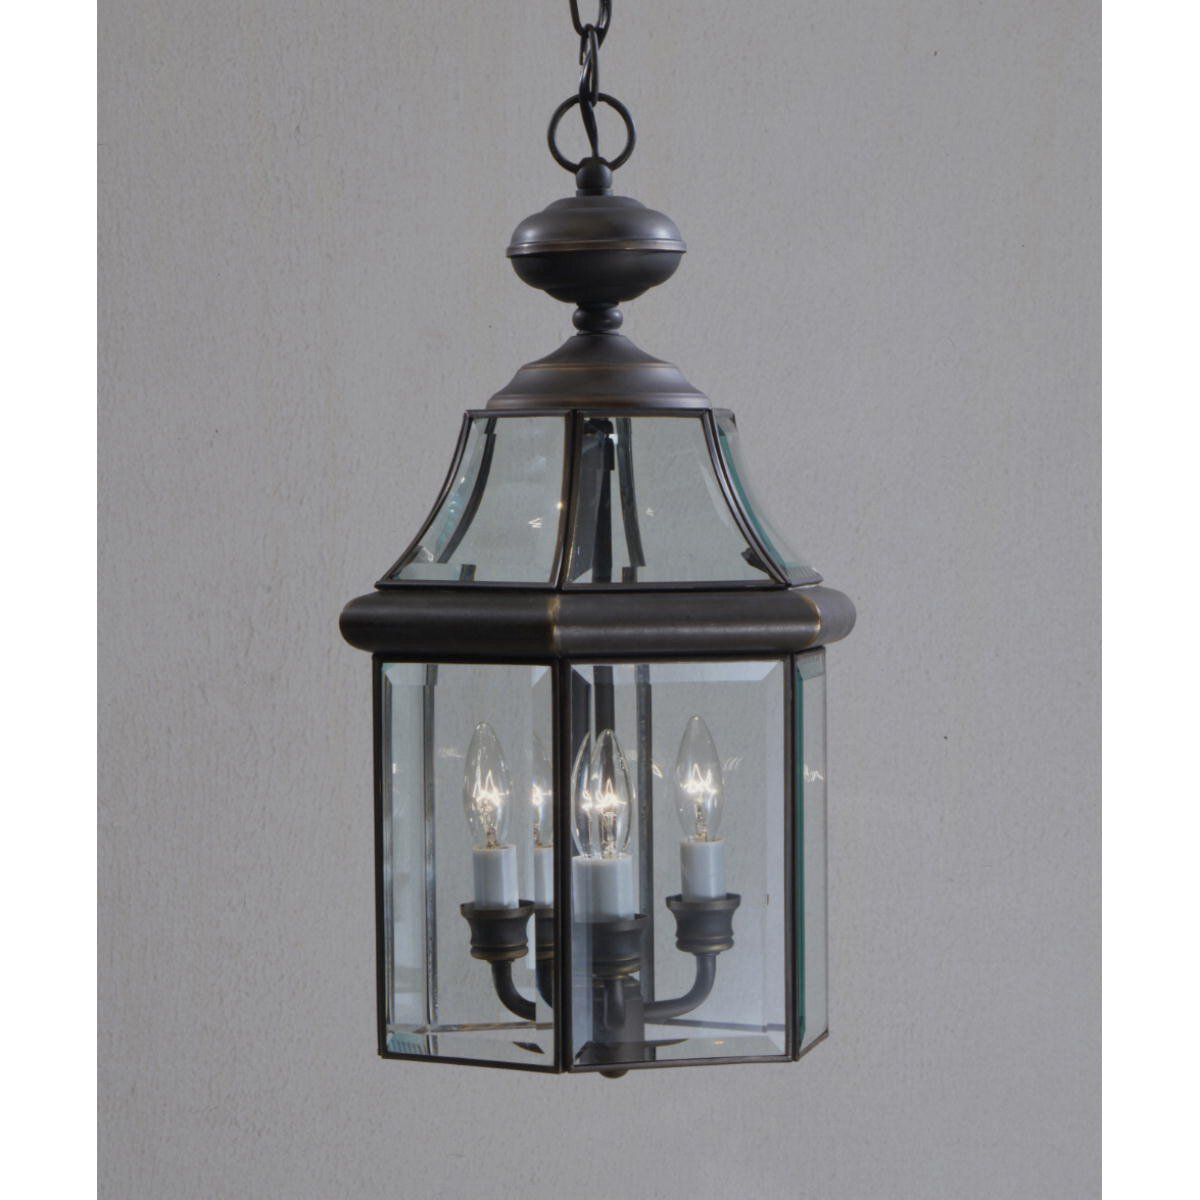 Kichler Embassy Row 3 Light Outdoor Hanging Lantern Reviews Wayfair